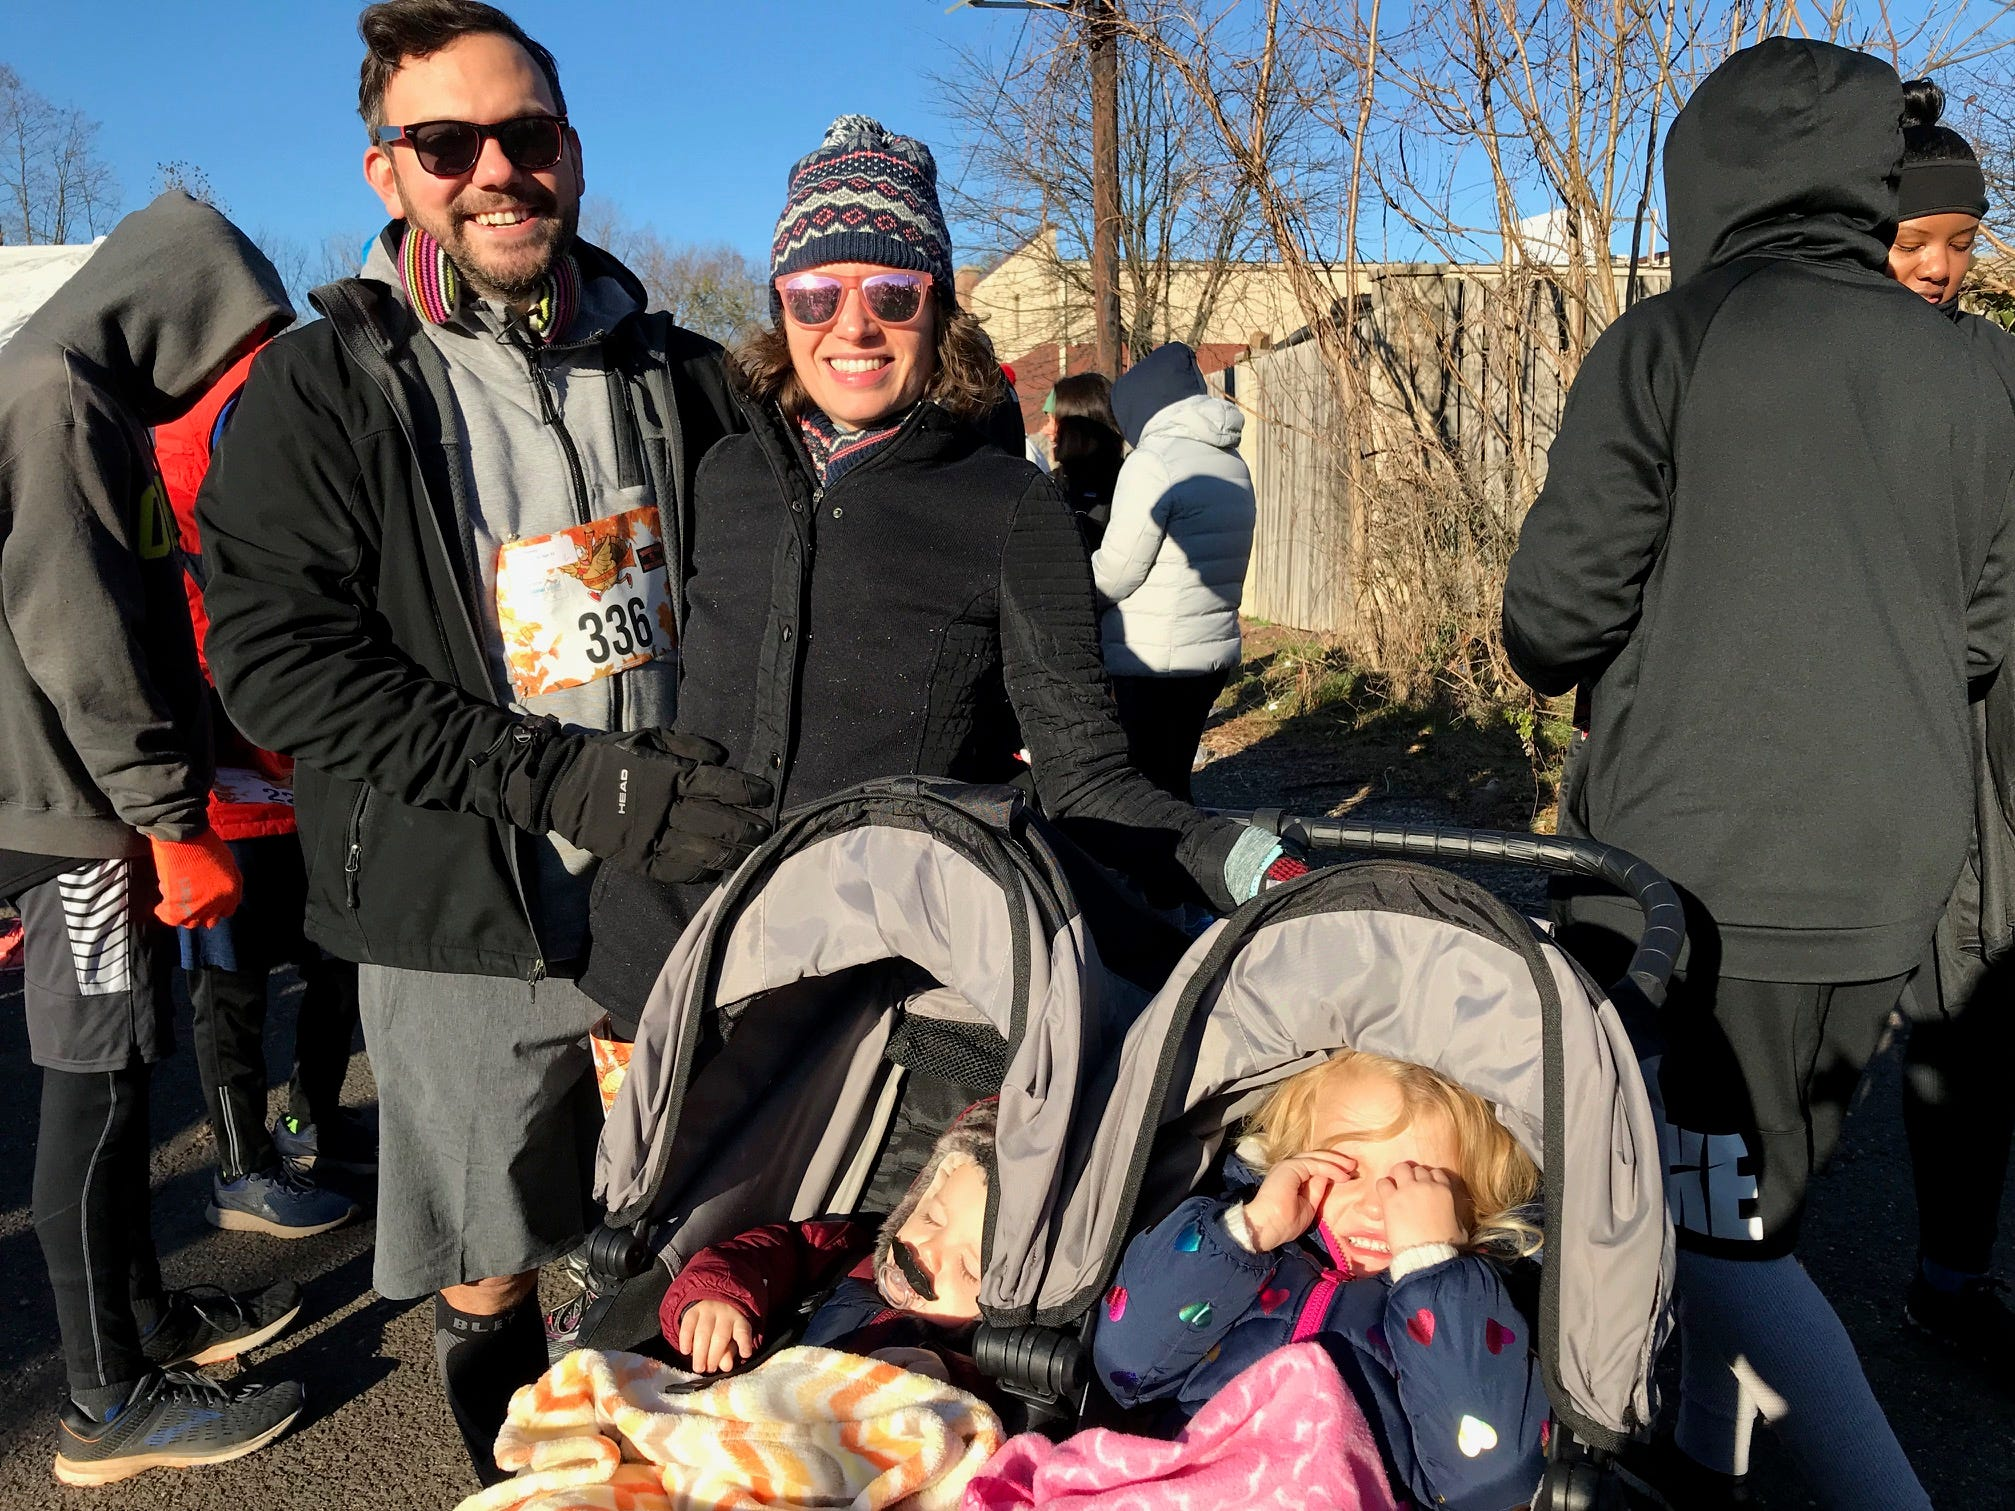 Since she doesn't have to cook this year Tina Kennedy came out to run the Somerville Turkey Trot with her husband and two children.